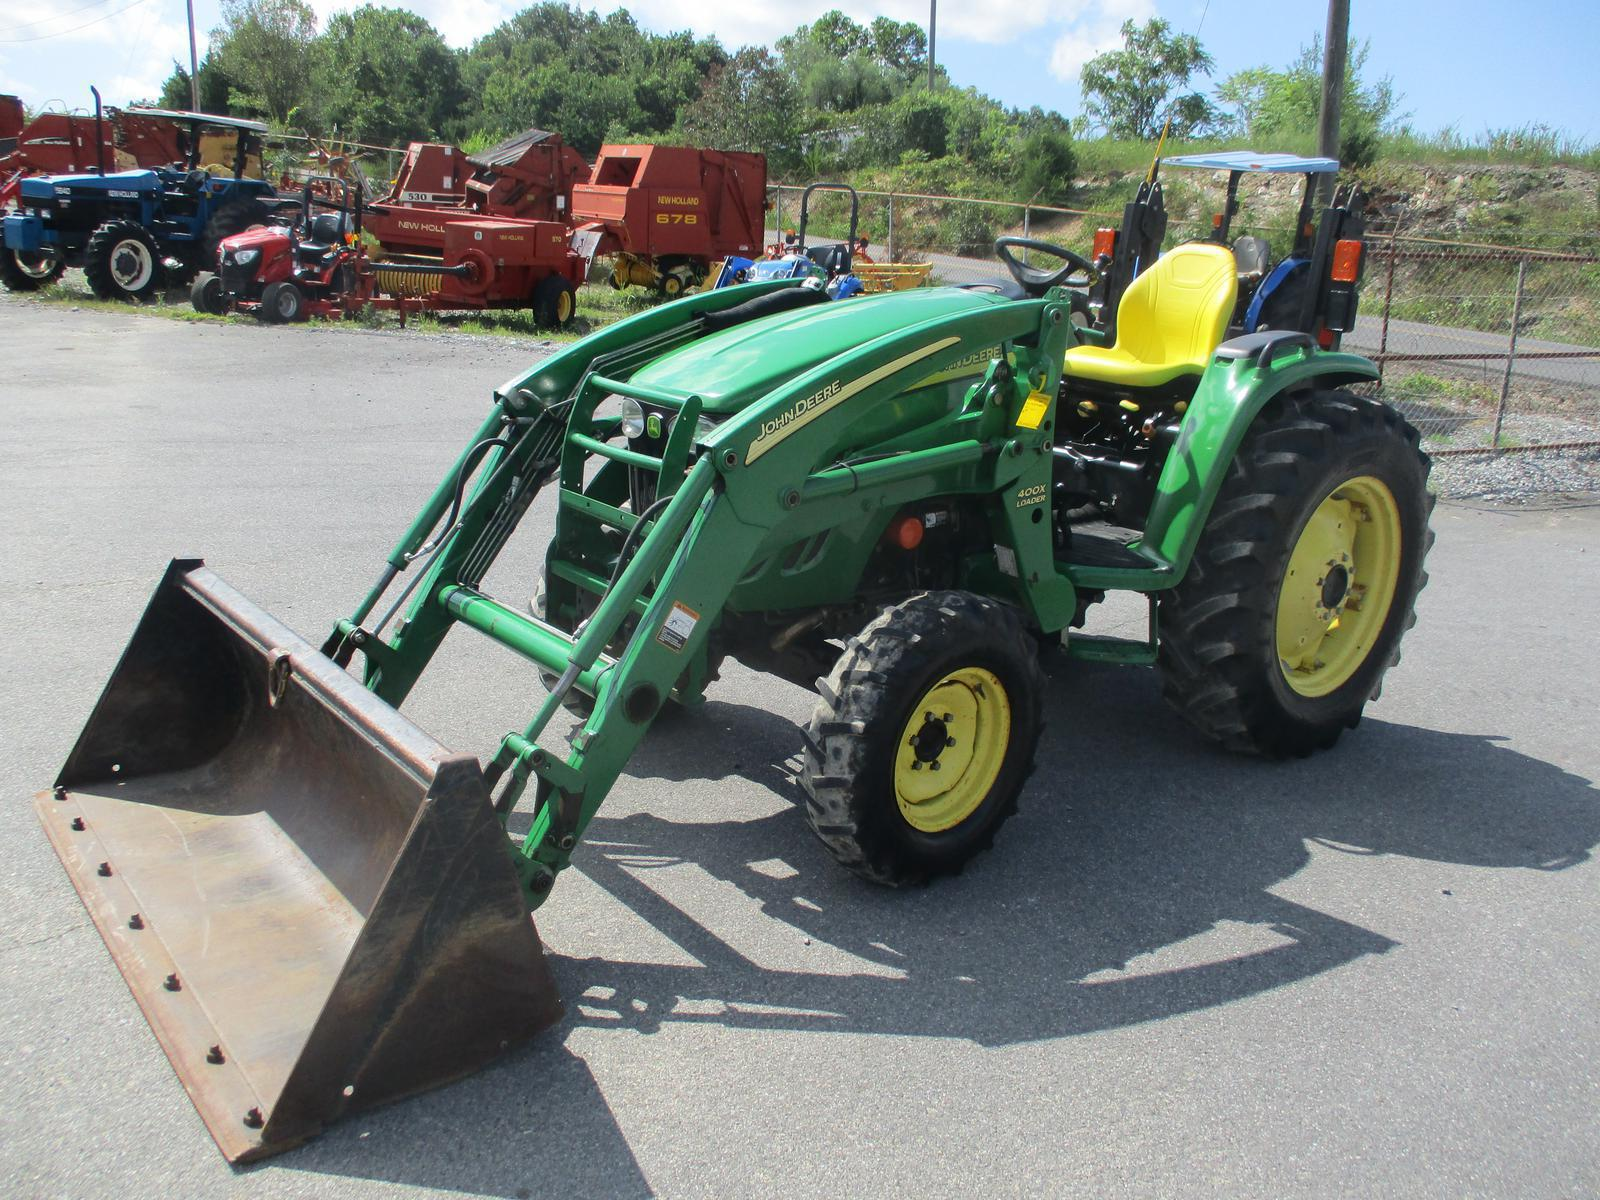 Inventory Cox Tractor Co , Inc  Kingsport, TN (423) 288-2451